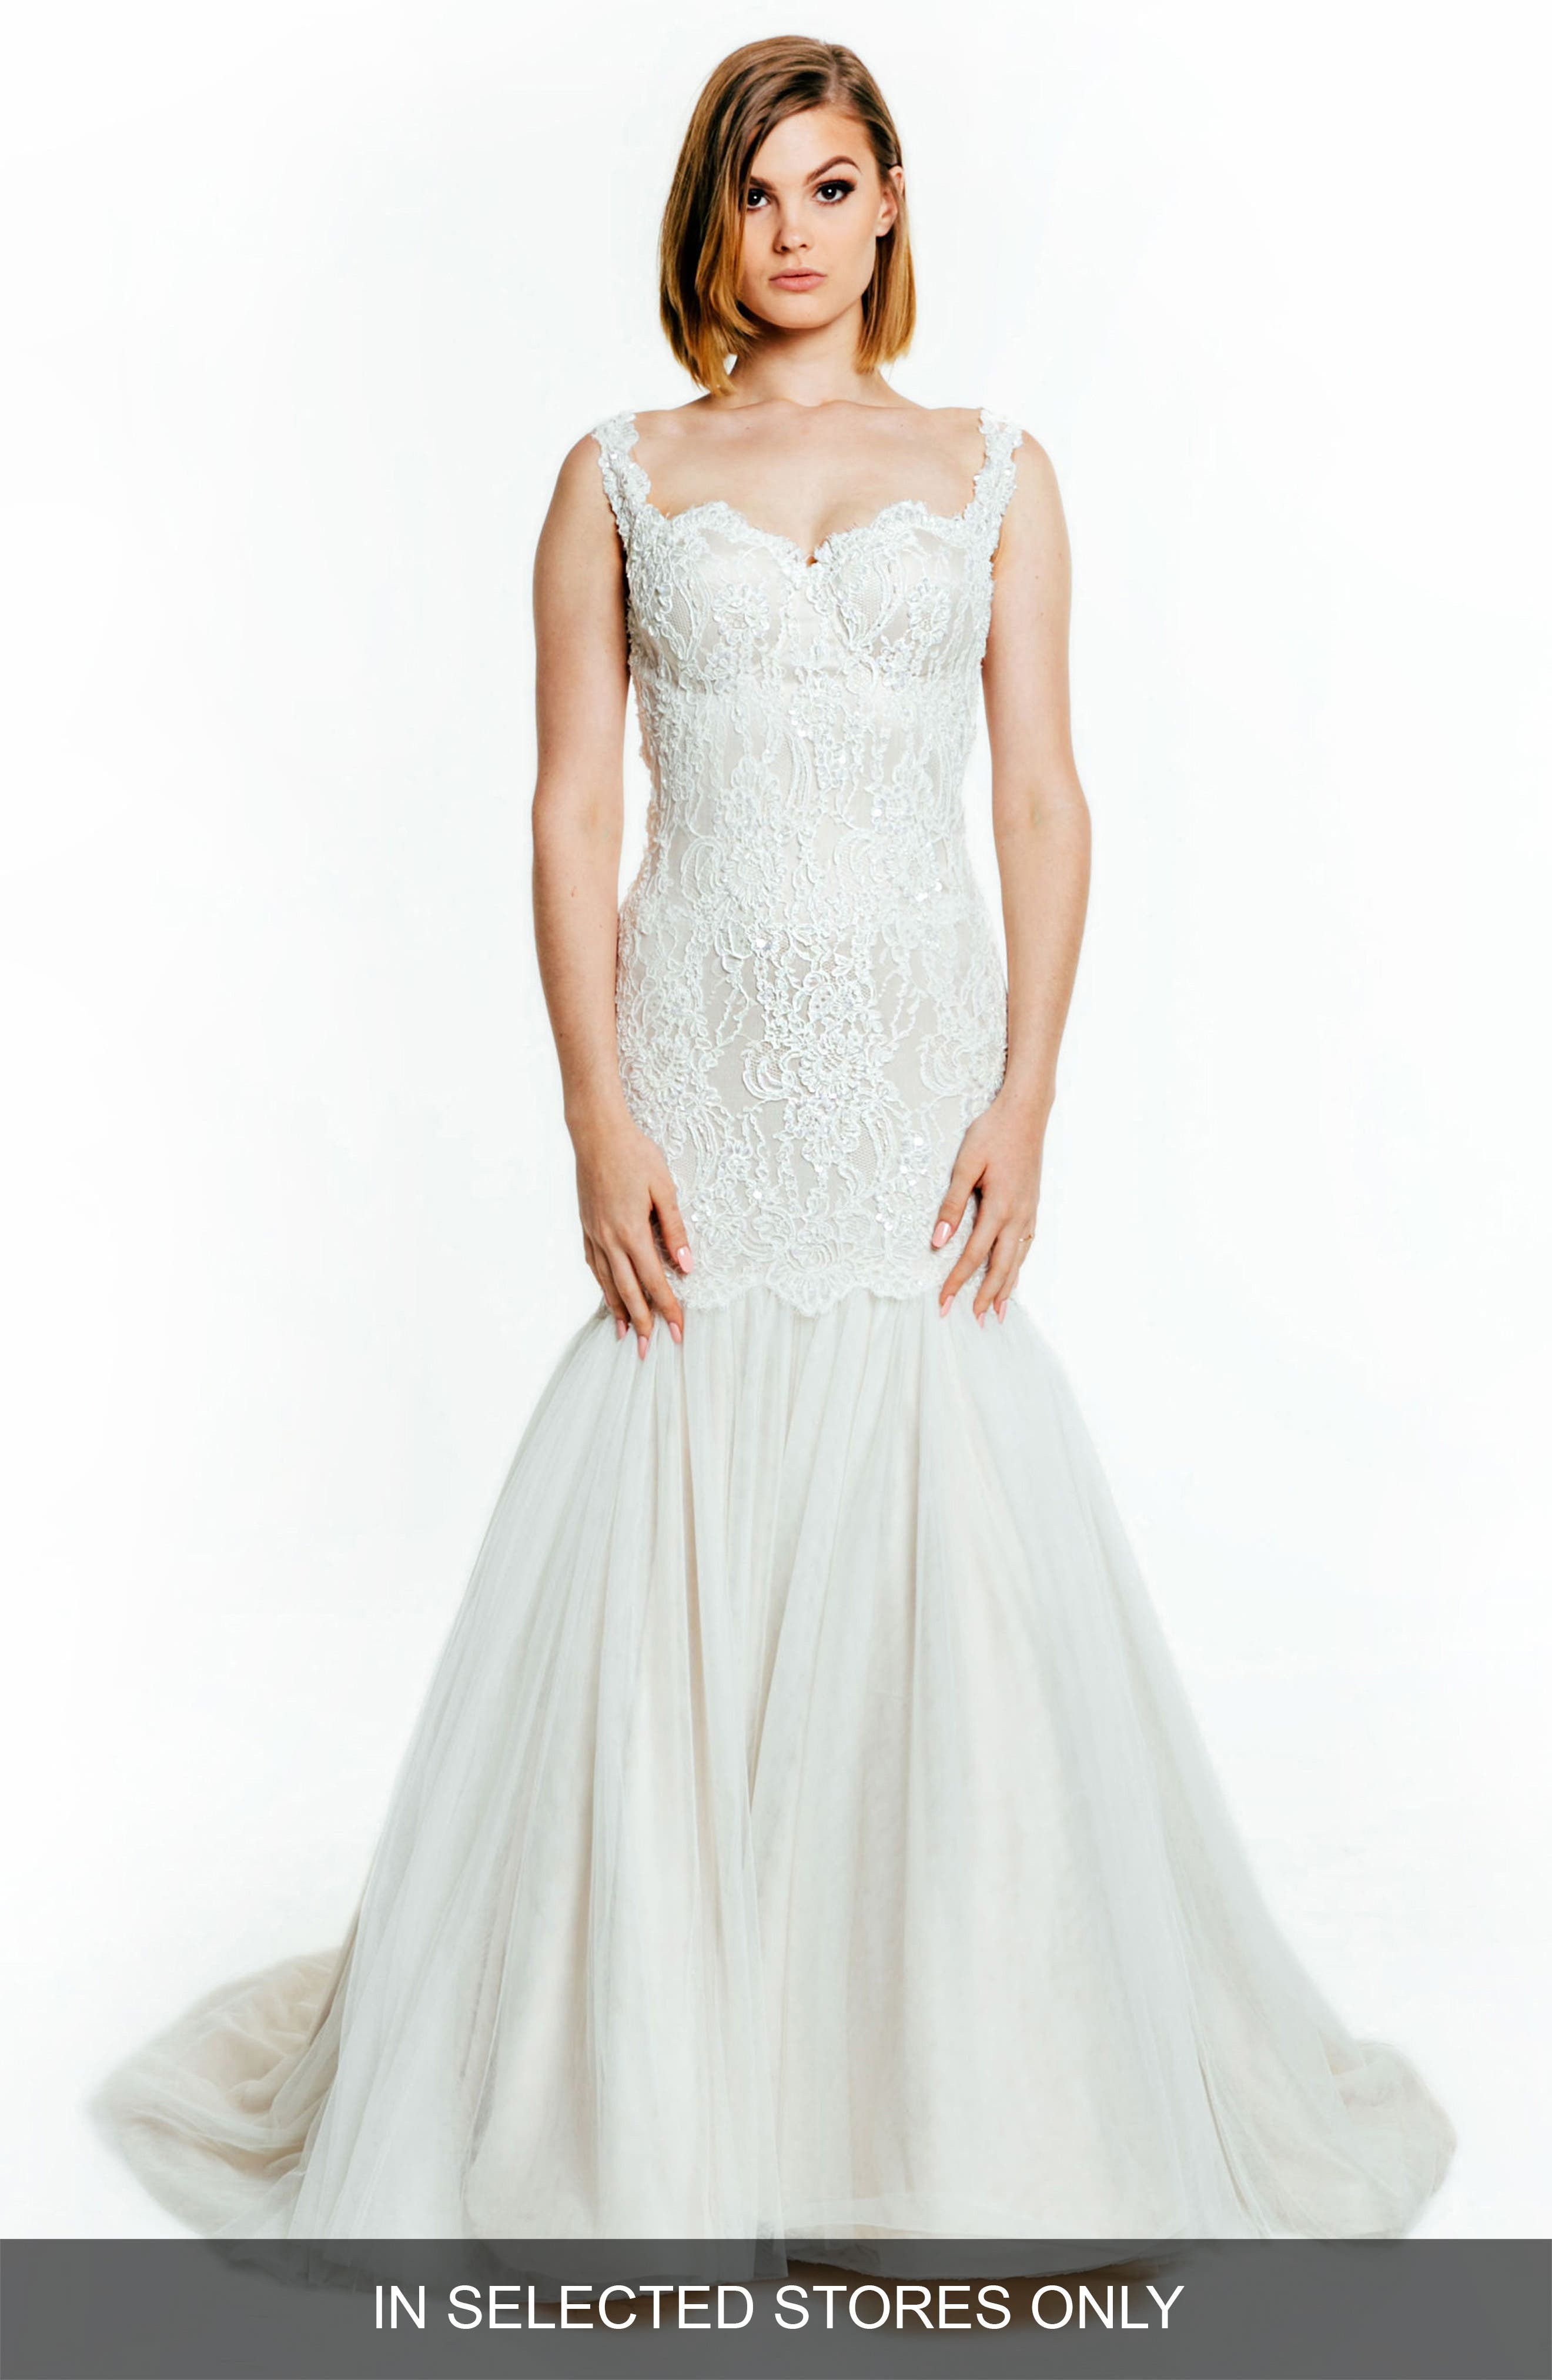 Olia Zavozina Francesca Sleeveless Sweetheart Silk Gown (In Selected Stores Only)